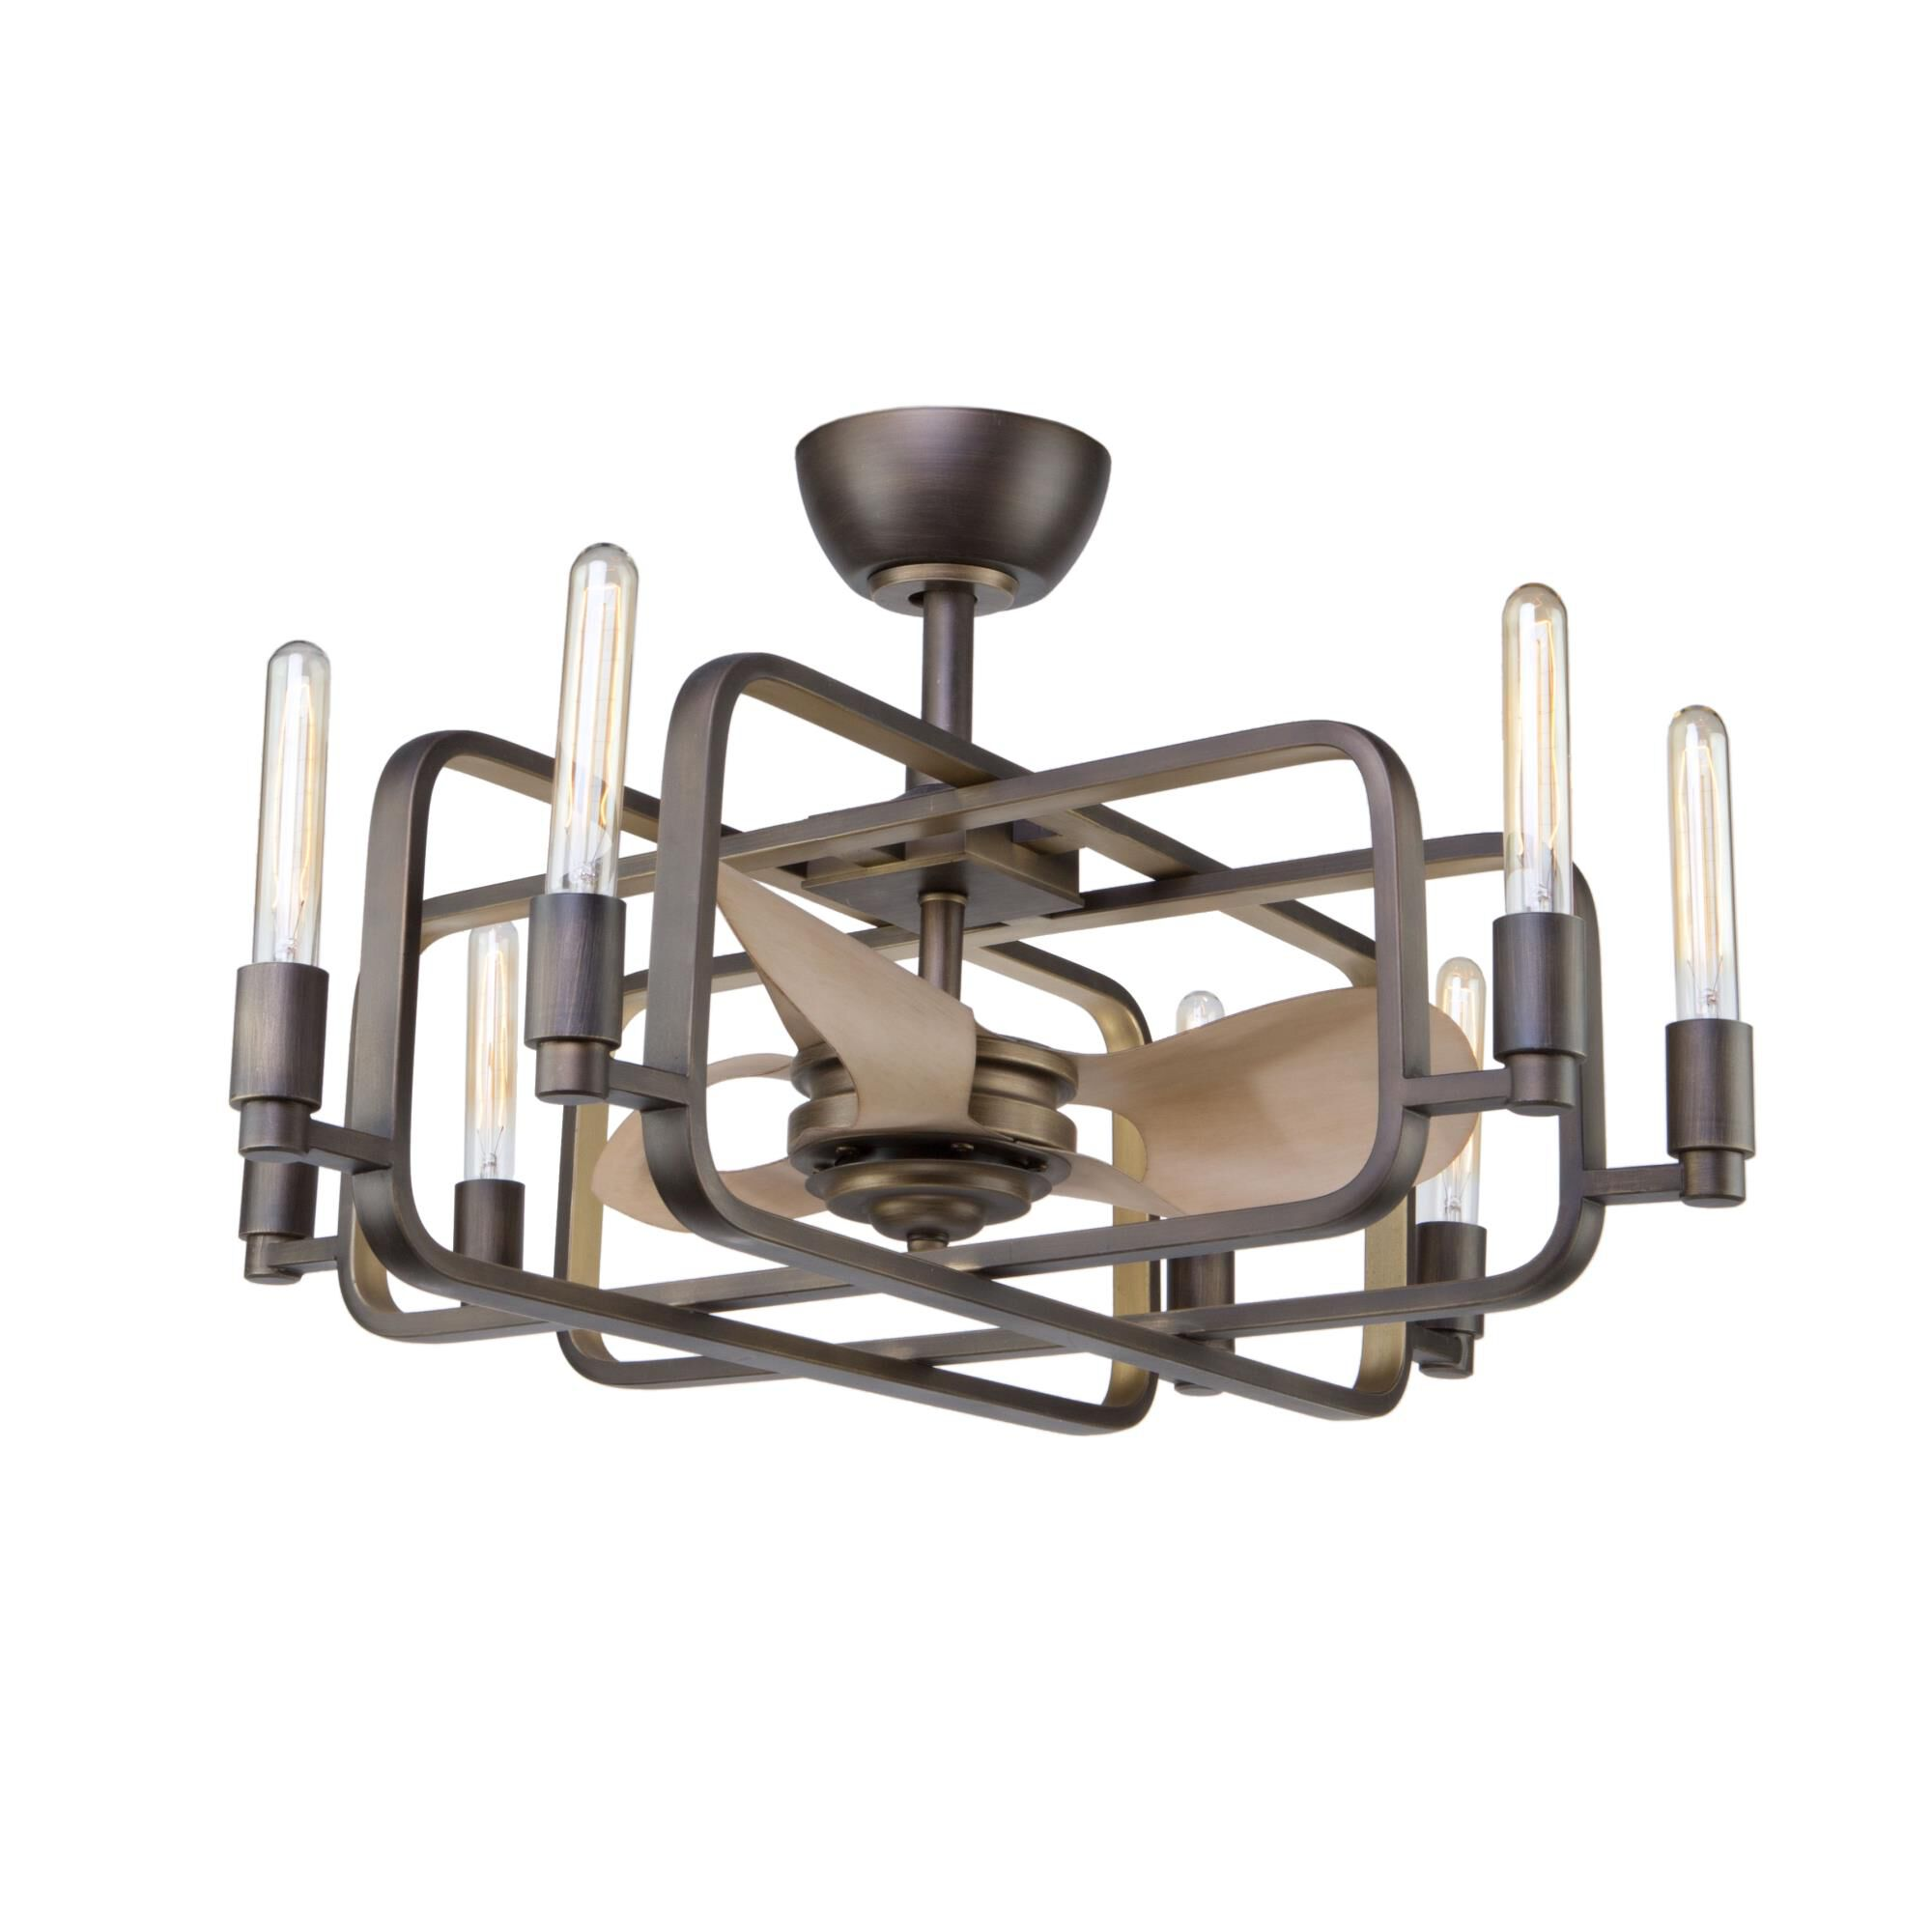 Artcraft Marlborough 31 Inch 8 Light Chandelier Marlborough - Ac11080 - Art Deco Chandelier